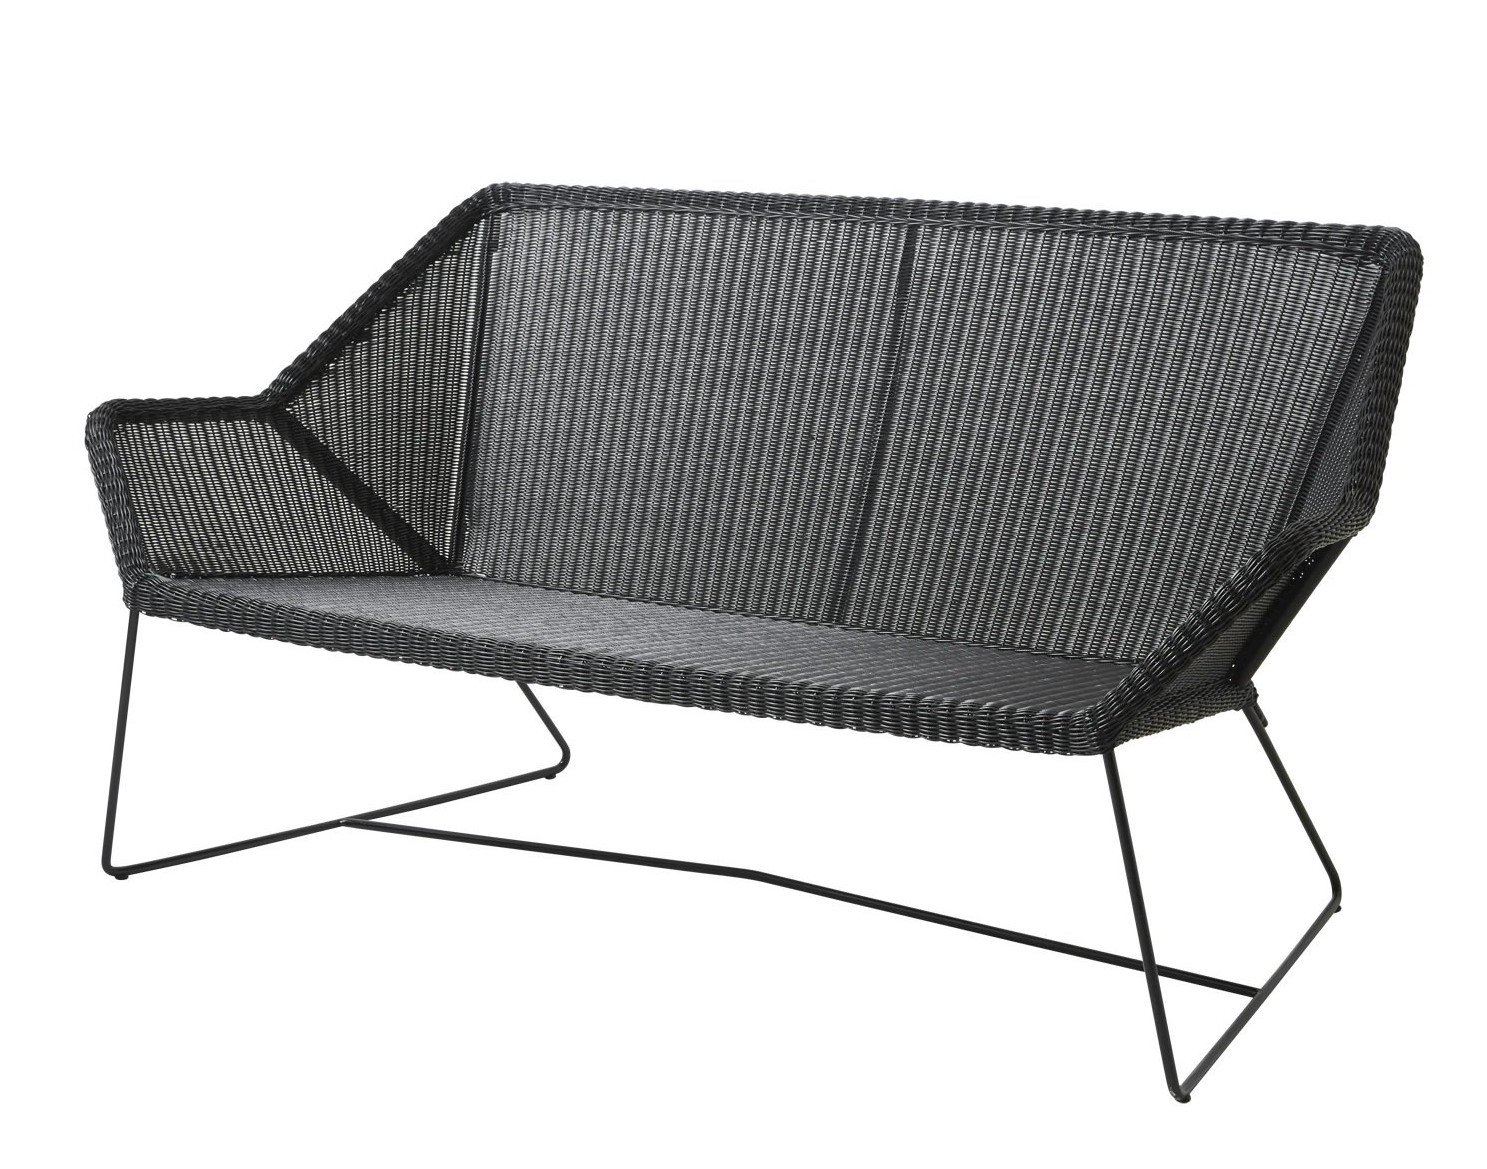 Breeze 2-Seater Sofa from Cane-line, designed by Strand+Hvass